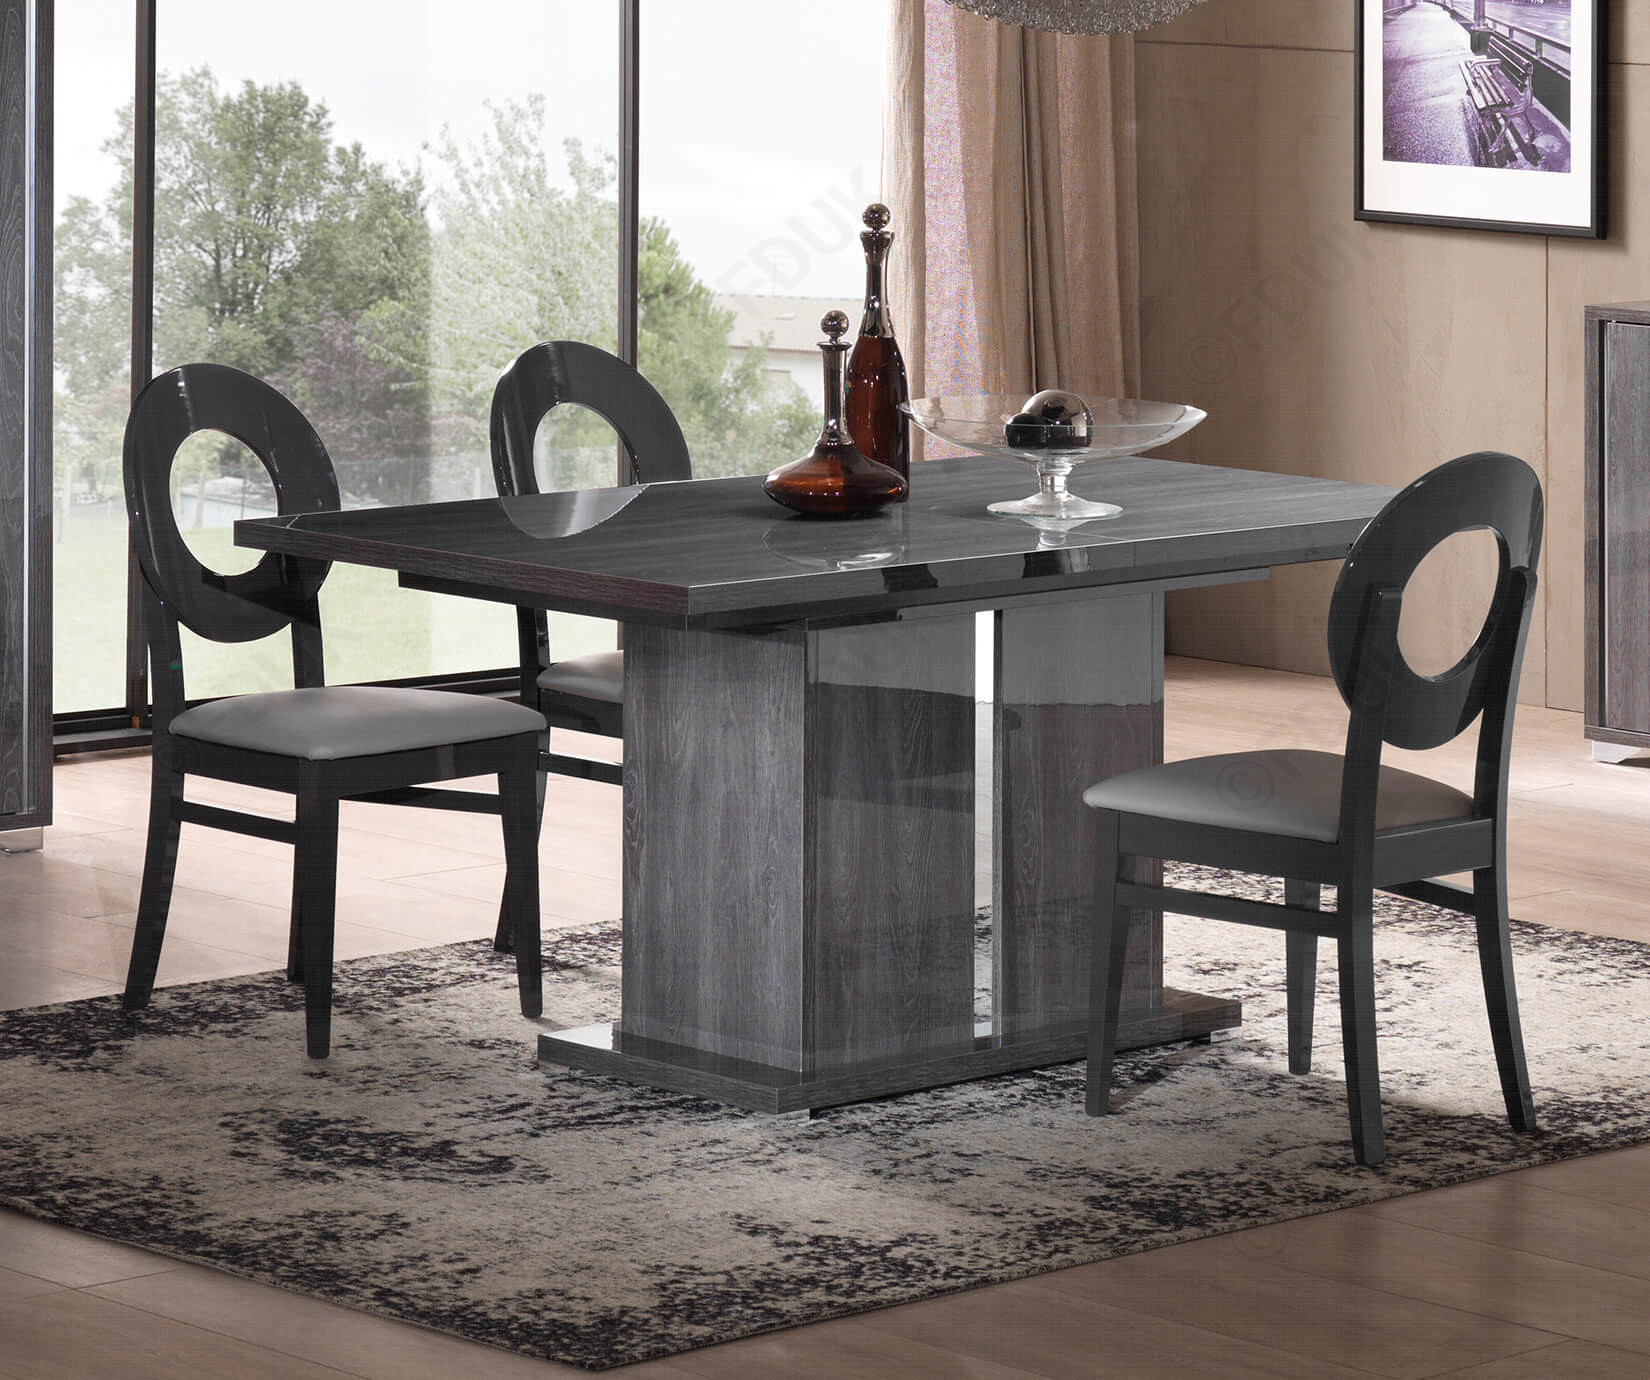 San Martino Armony Rectangular Extension Dining Table With 6 Oval Dining Chair Regarding Current Martino Dining Tables (View 2 of 25)